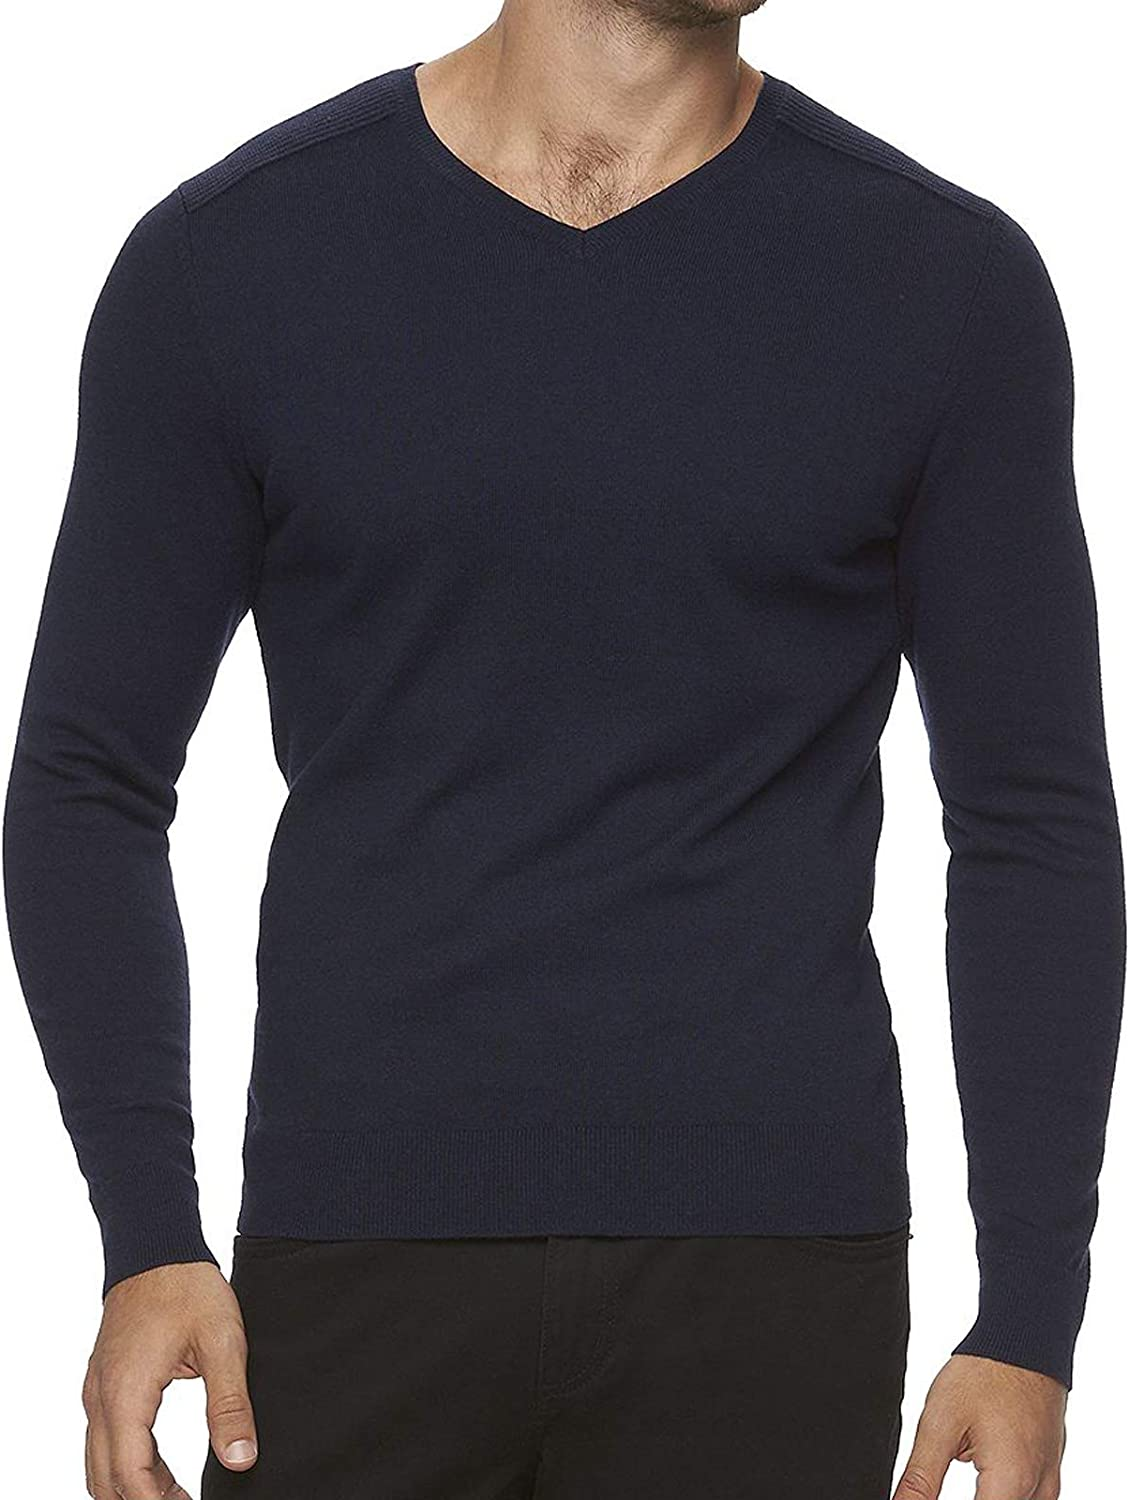 marc Anthony Men's Big and Tall Lightweight Slim-Fit Solid Cashmere-Blend V-Neck Pullover Sweater